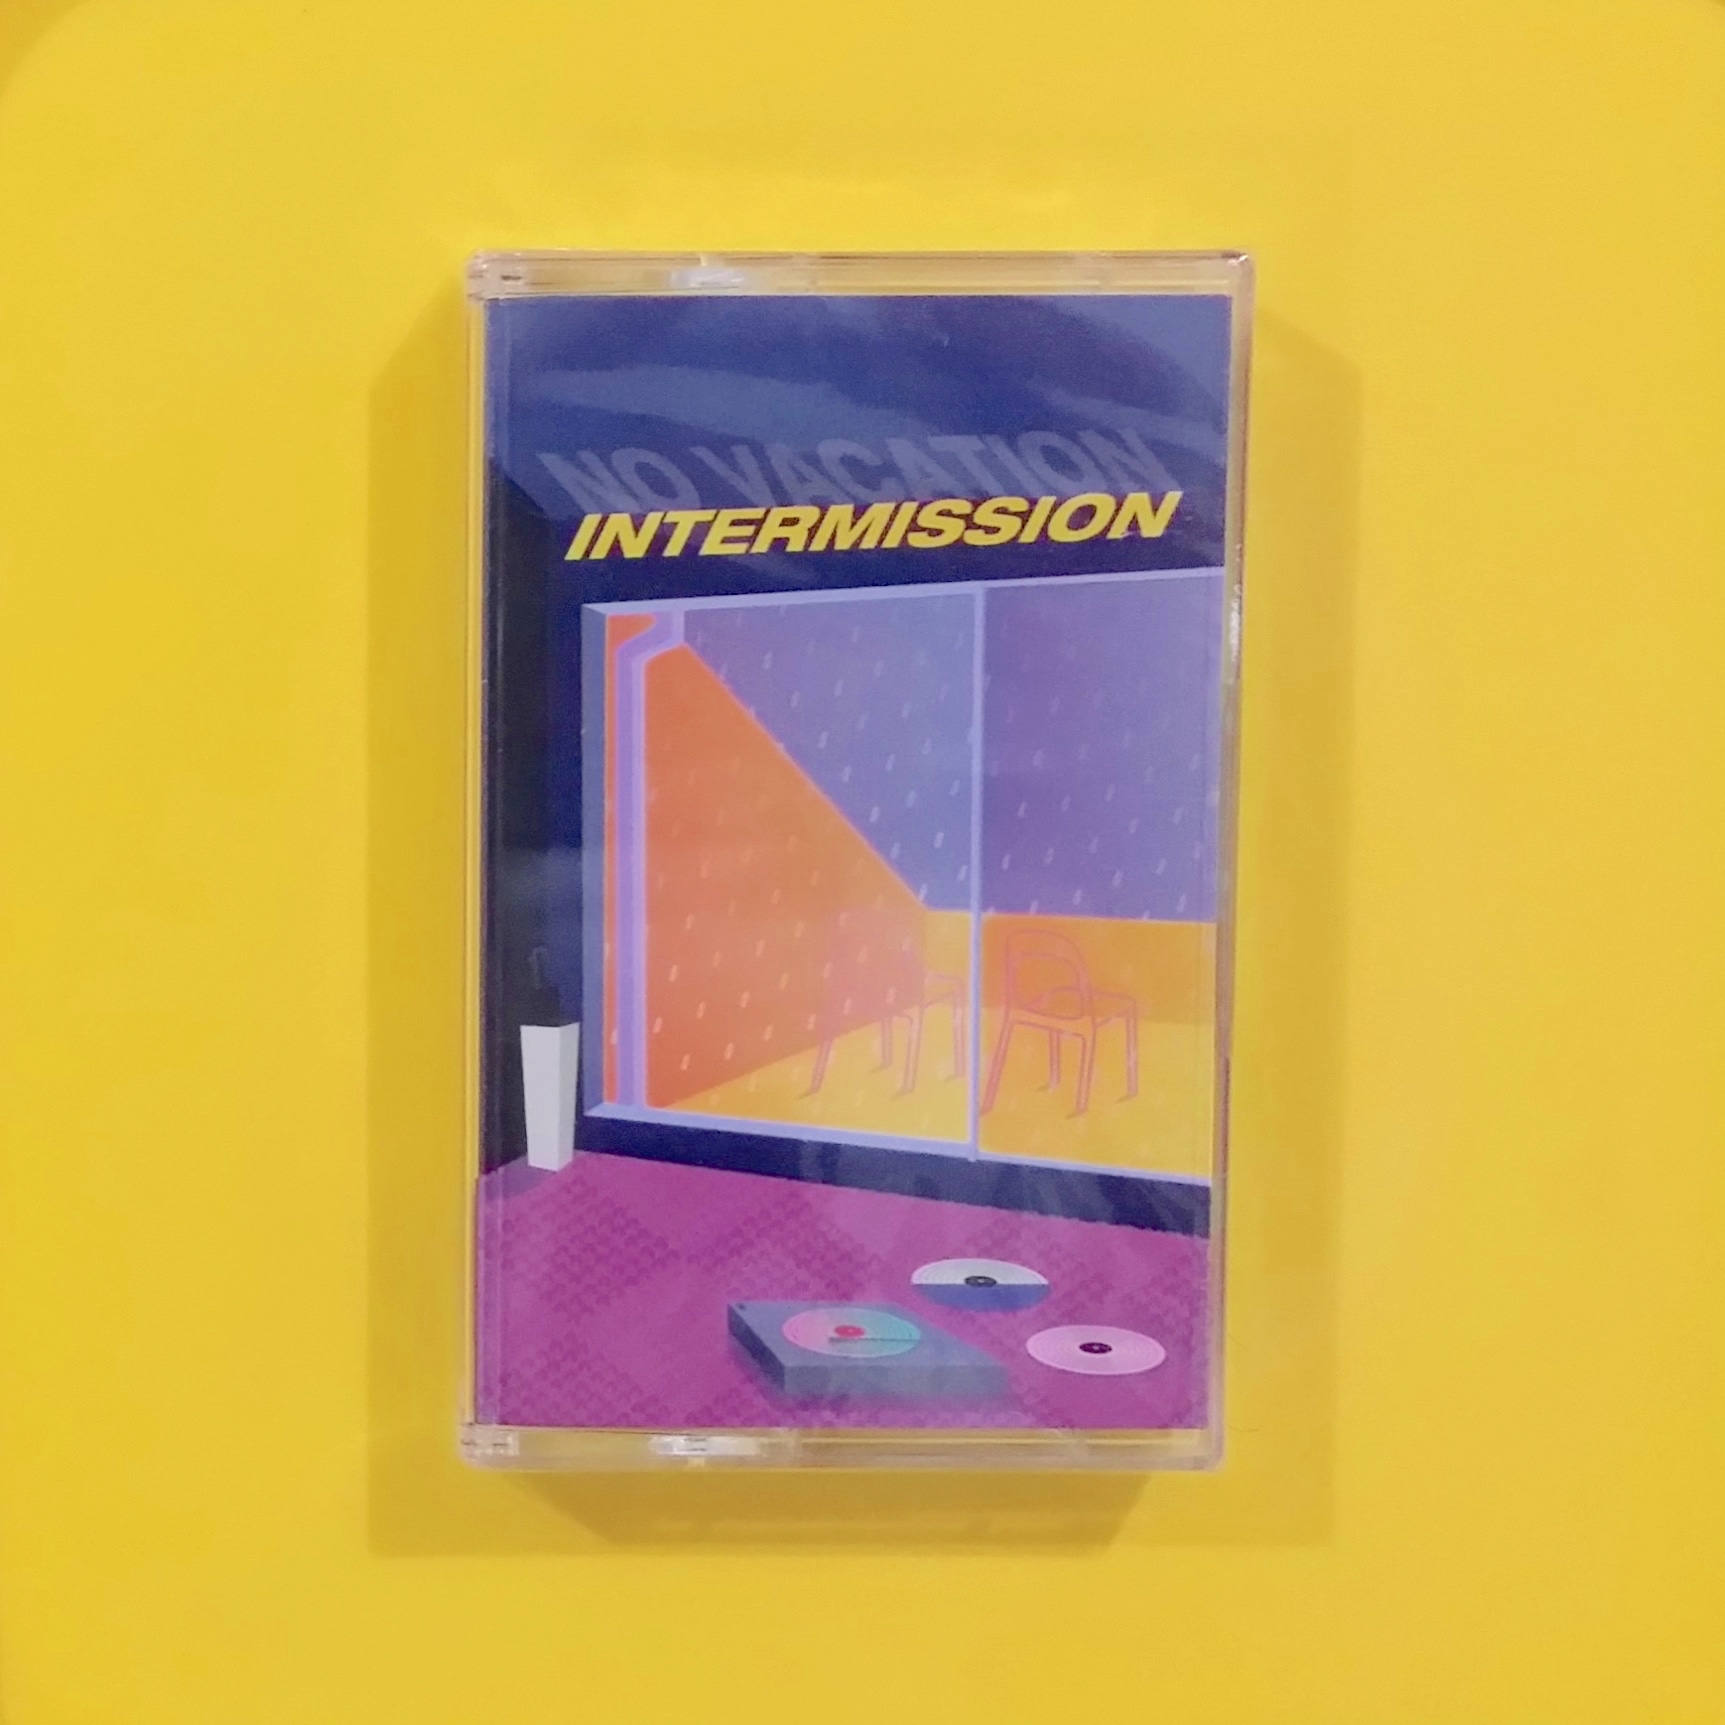 [SOLD] No Vacation - Intermission (Topshelf Records)